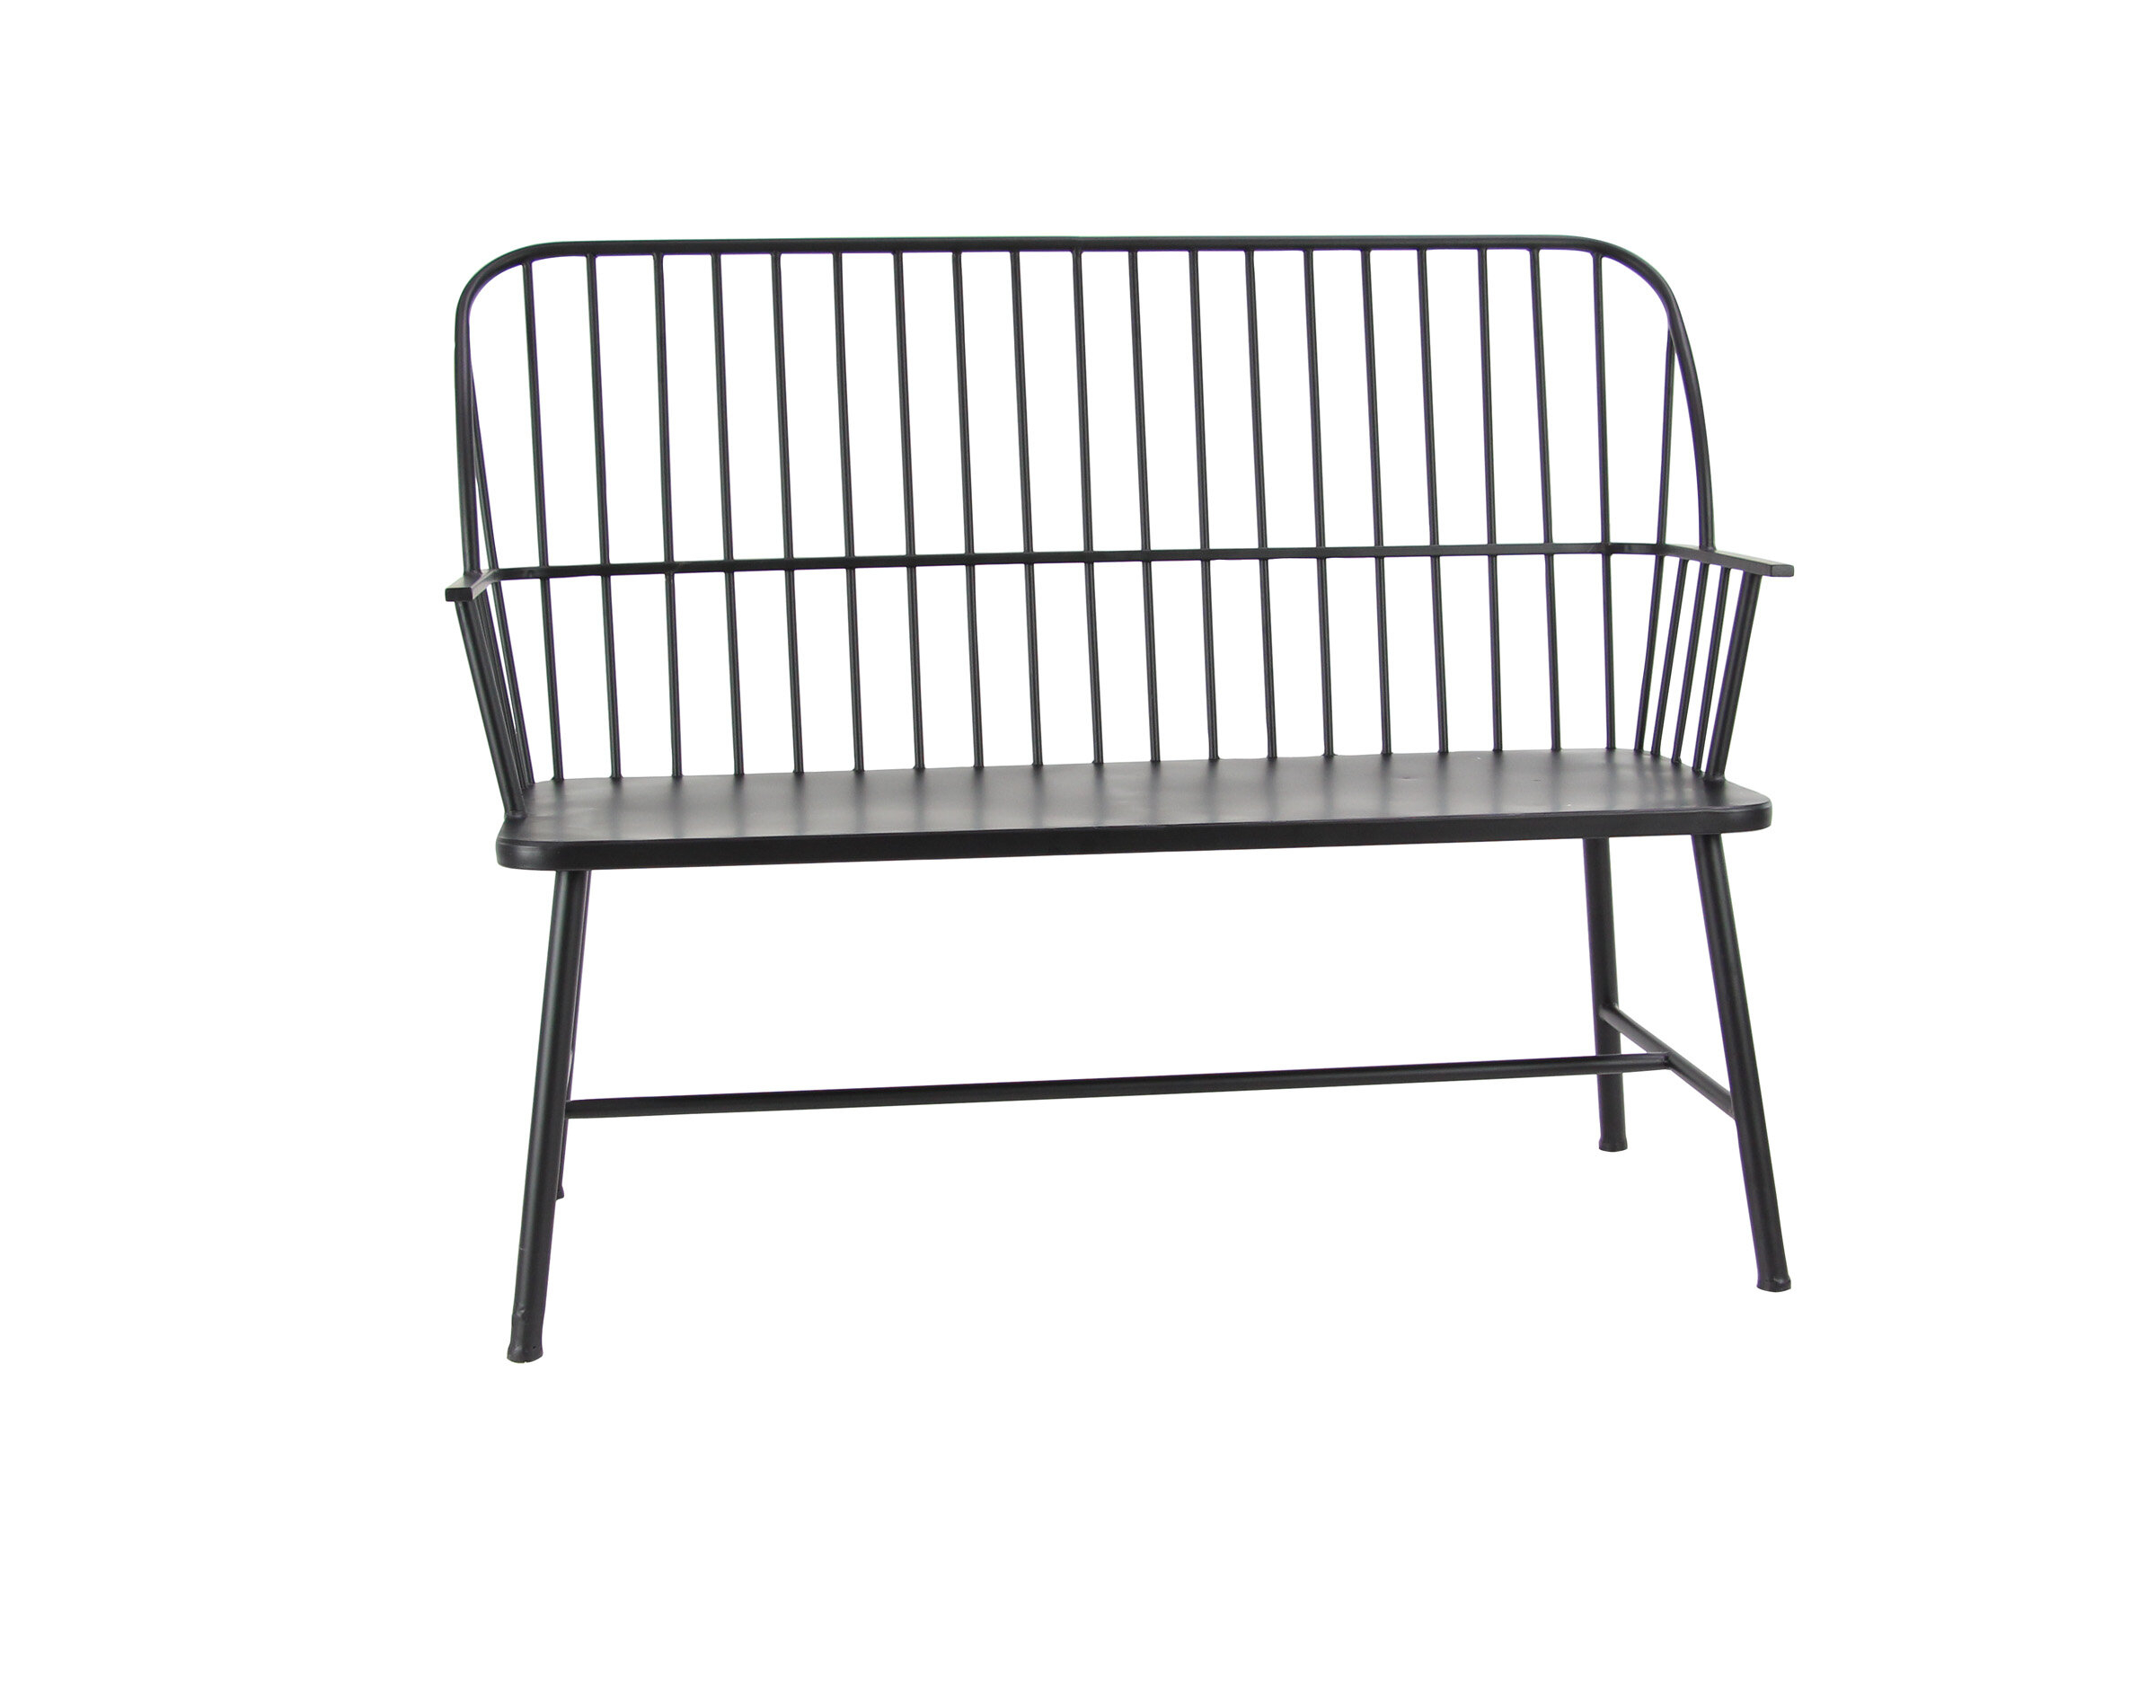 Gehlert Traditional Patio Iron Garden Bench Pertaining To Zev Blue Fish Metal Garden Benches (View 11 of 25)